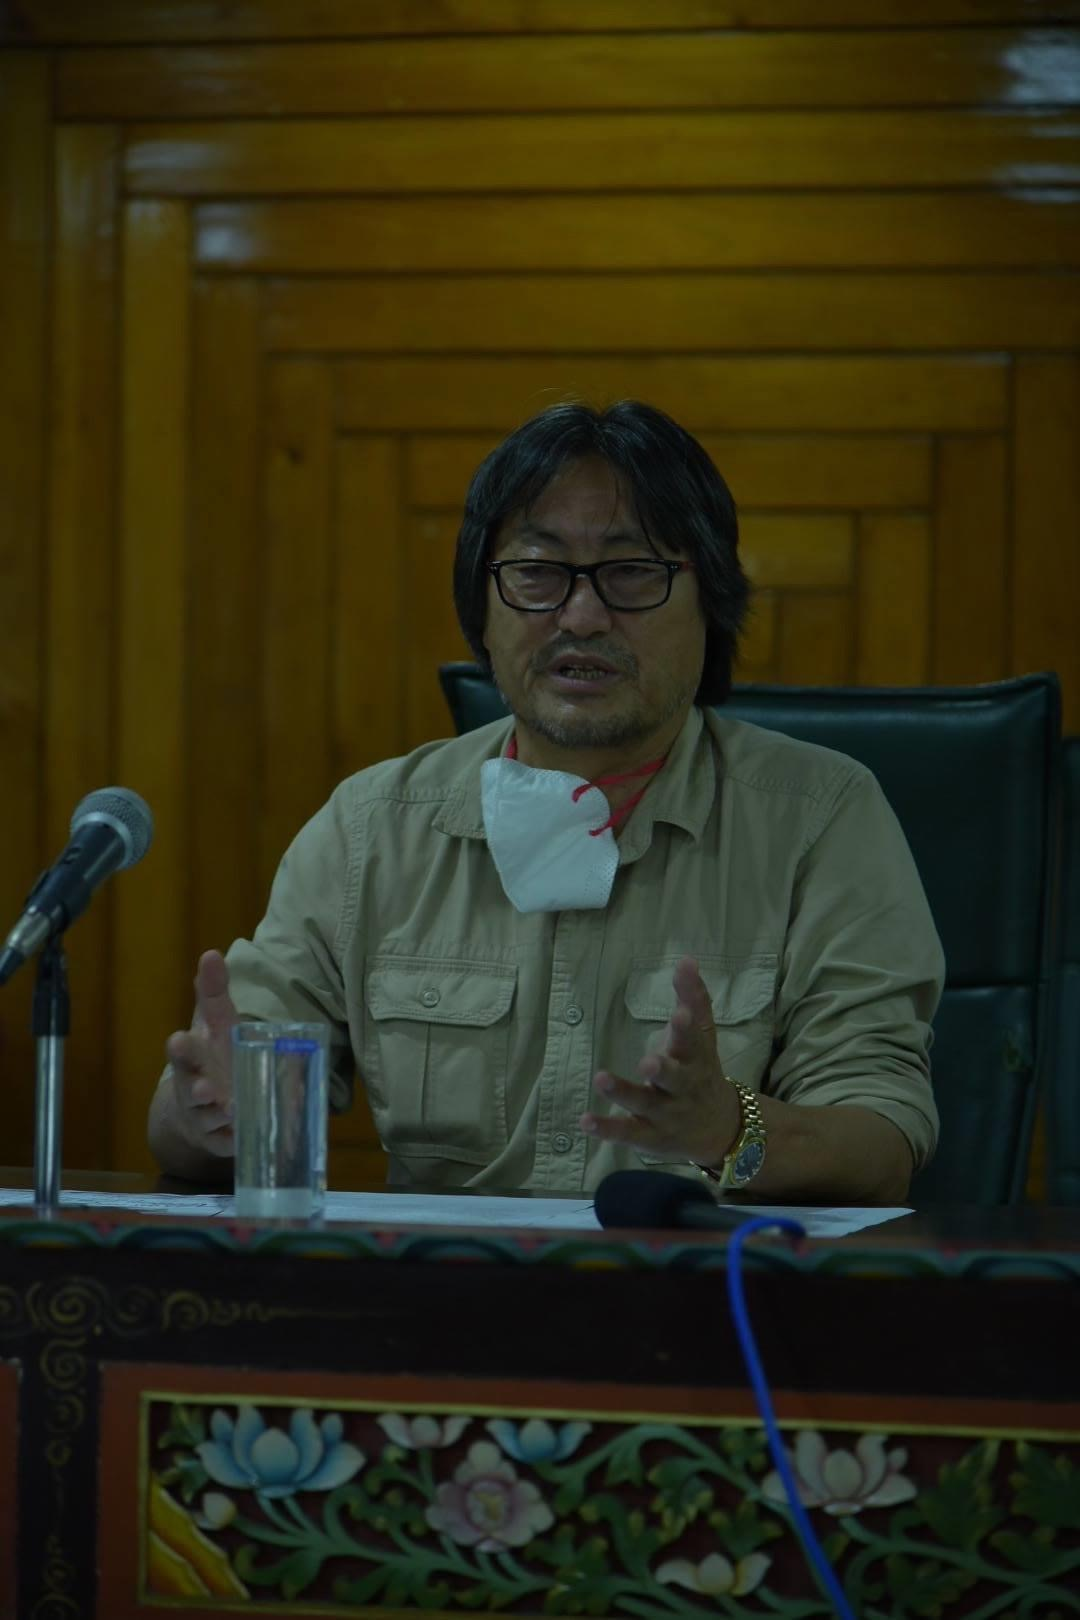 Hon'ble Minister Shri. Karma Loday Bhutia convened a press conference at Forest Secretariat